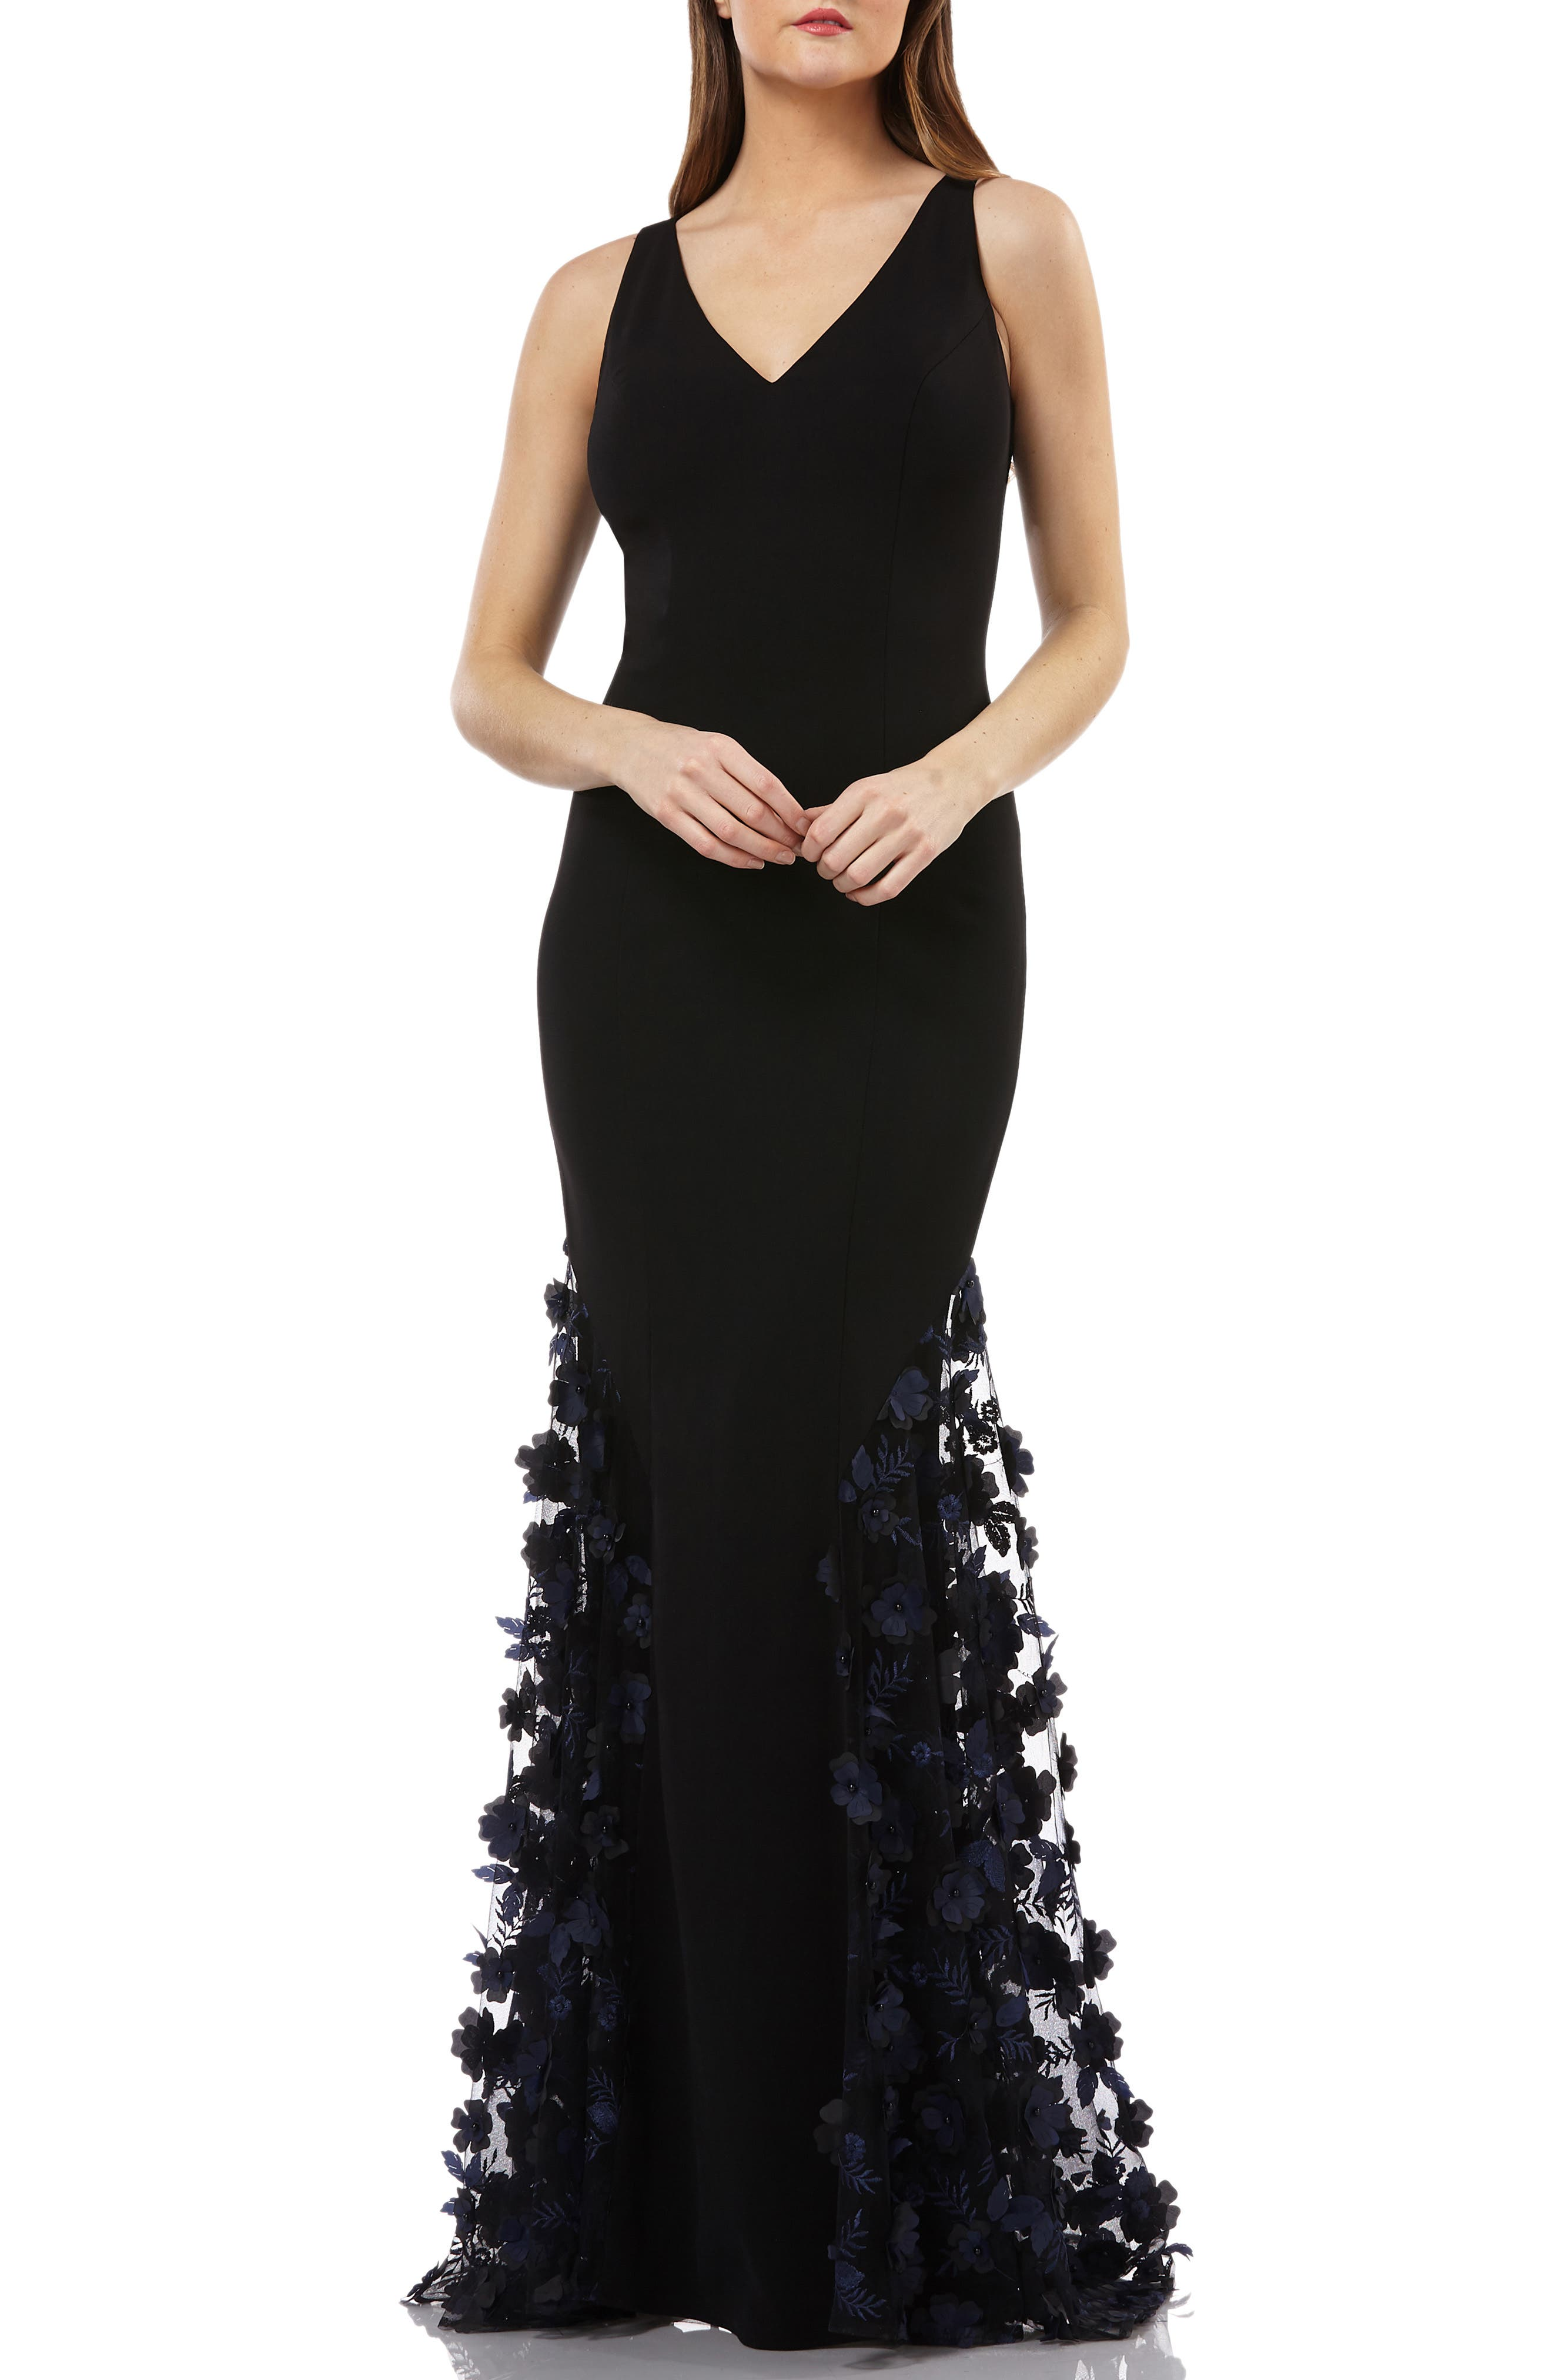 CARMEN MARC VALVO INFUSION Sleeveless Crepe Trumpet Gown With 3D Floral Mesh Detail in Black/Blue